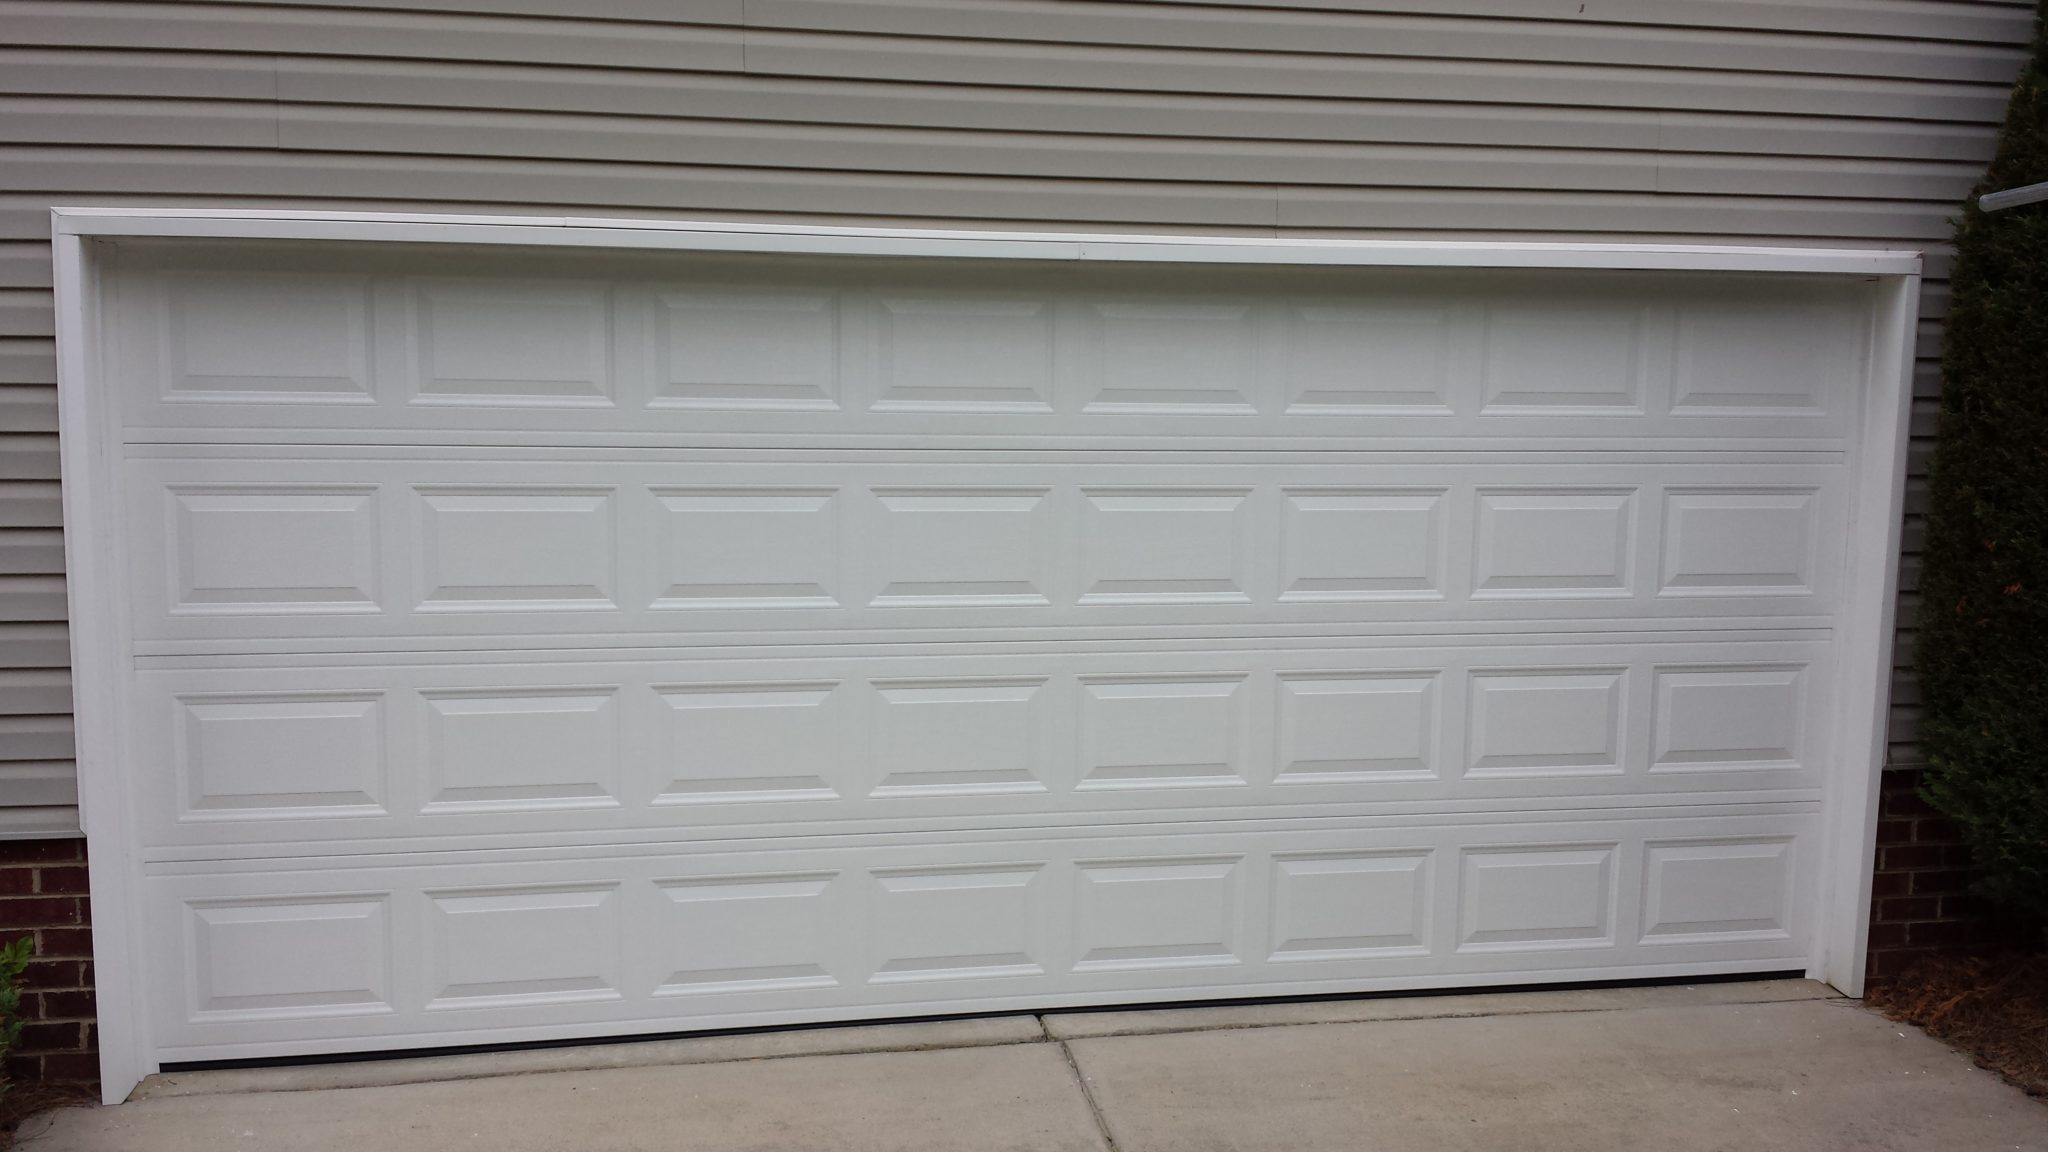 2322 #2D2823 Residential Garage Door Installation Concord NC North Carolina A Plus picture/photo Install Garage Doors 37094128